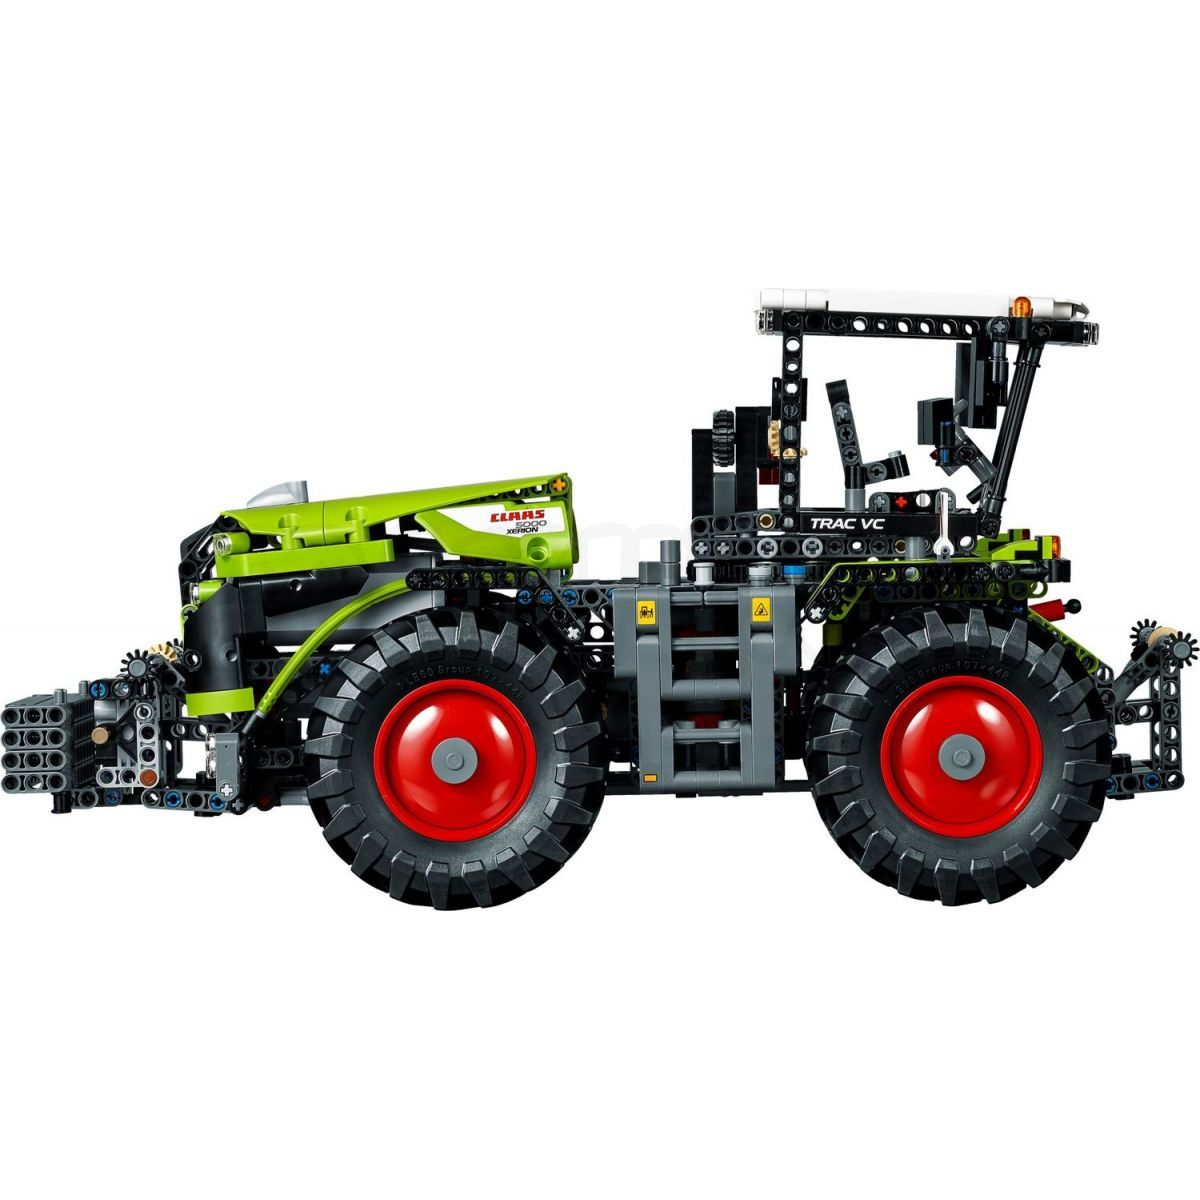 lego technic 42054 claas xerion 5000 trac vc max kovy hra ky. Black Bedroom Furniture Sets. Home Design Ideas